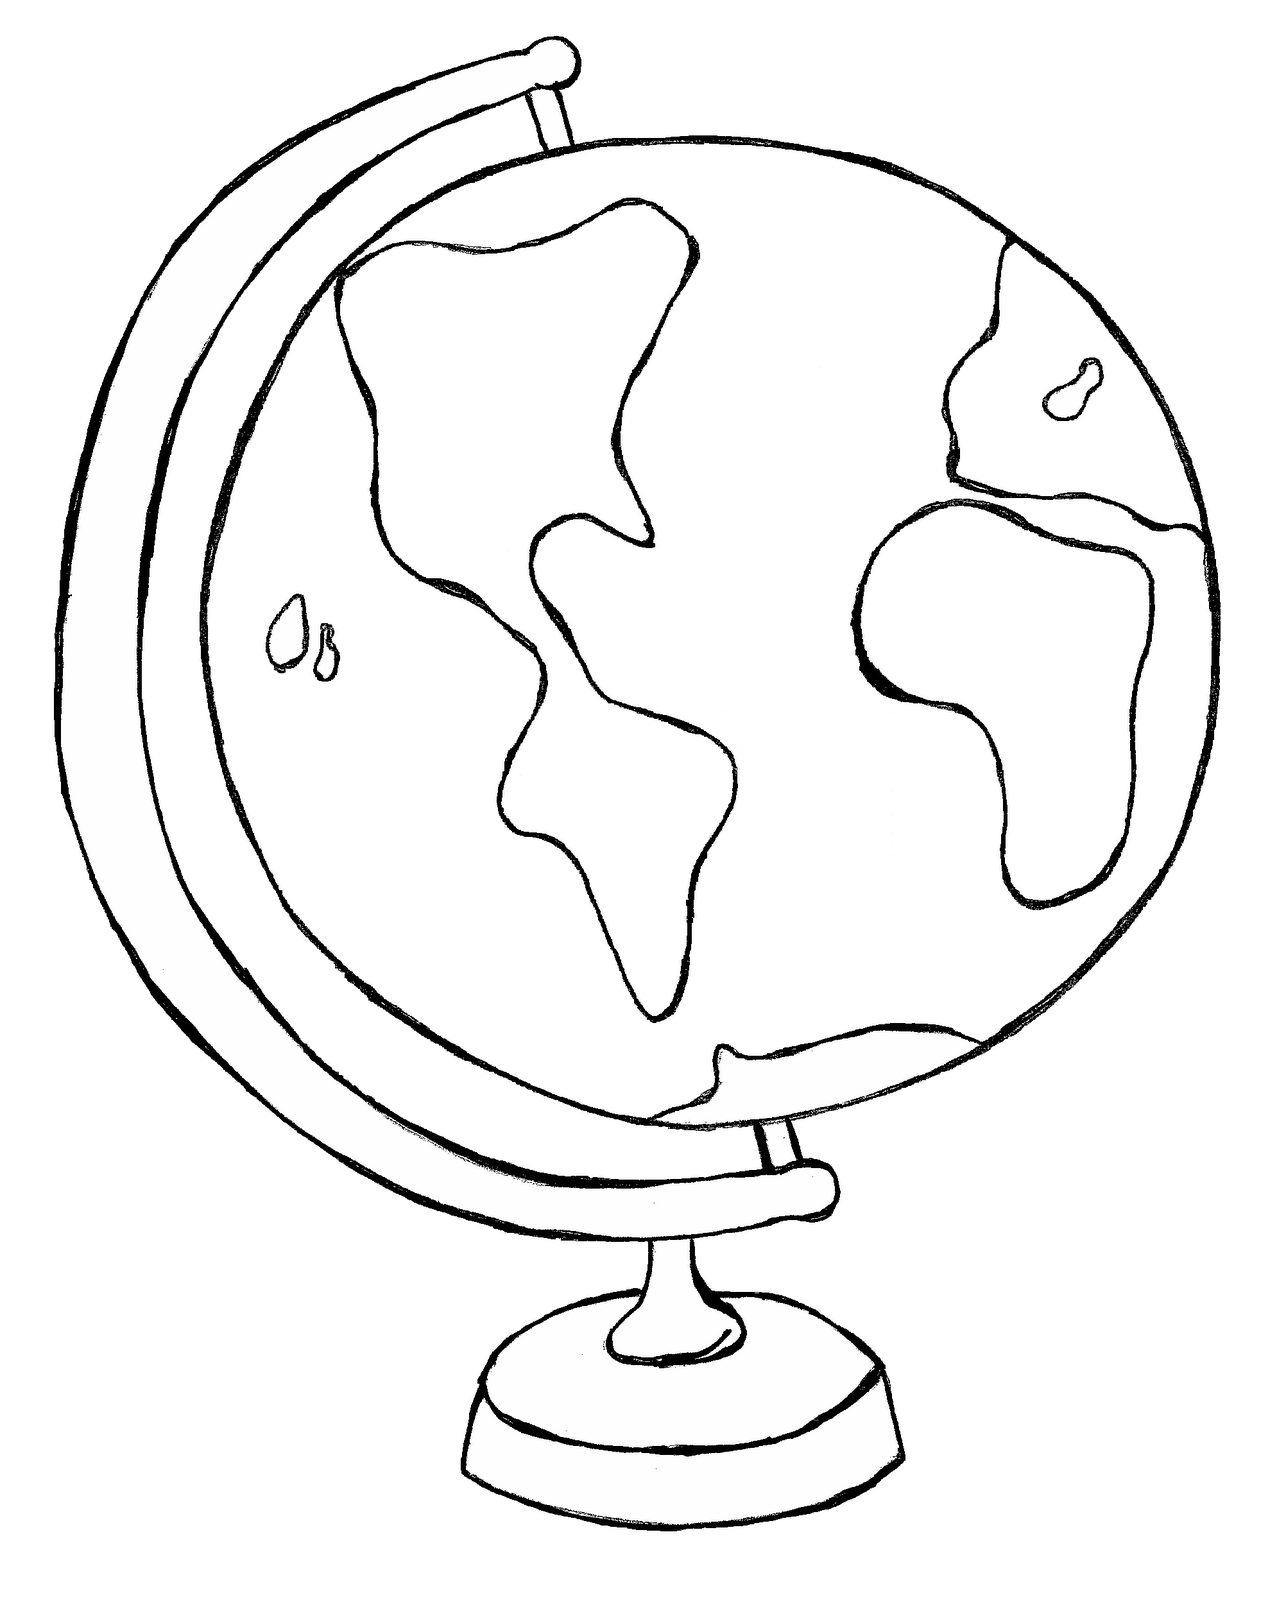 Globe clipart black and white clipart royalty free download Globe Clipart Black And White | Clipart Panda - Free Clipart Images clipart royalty free download